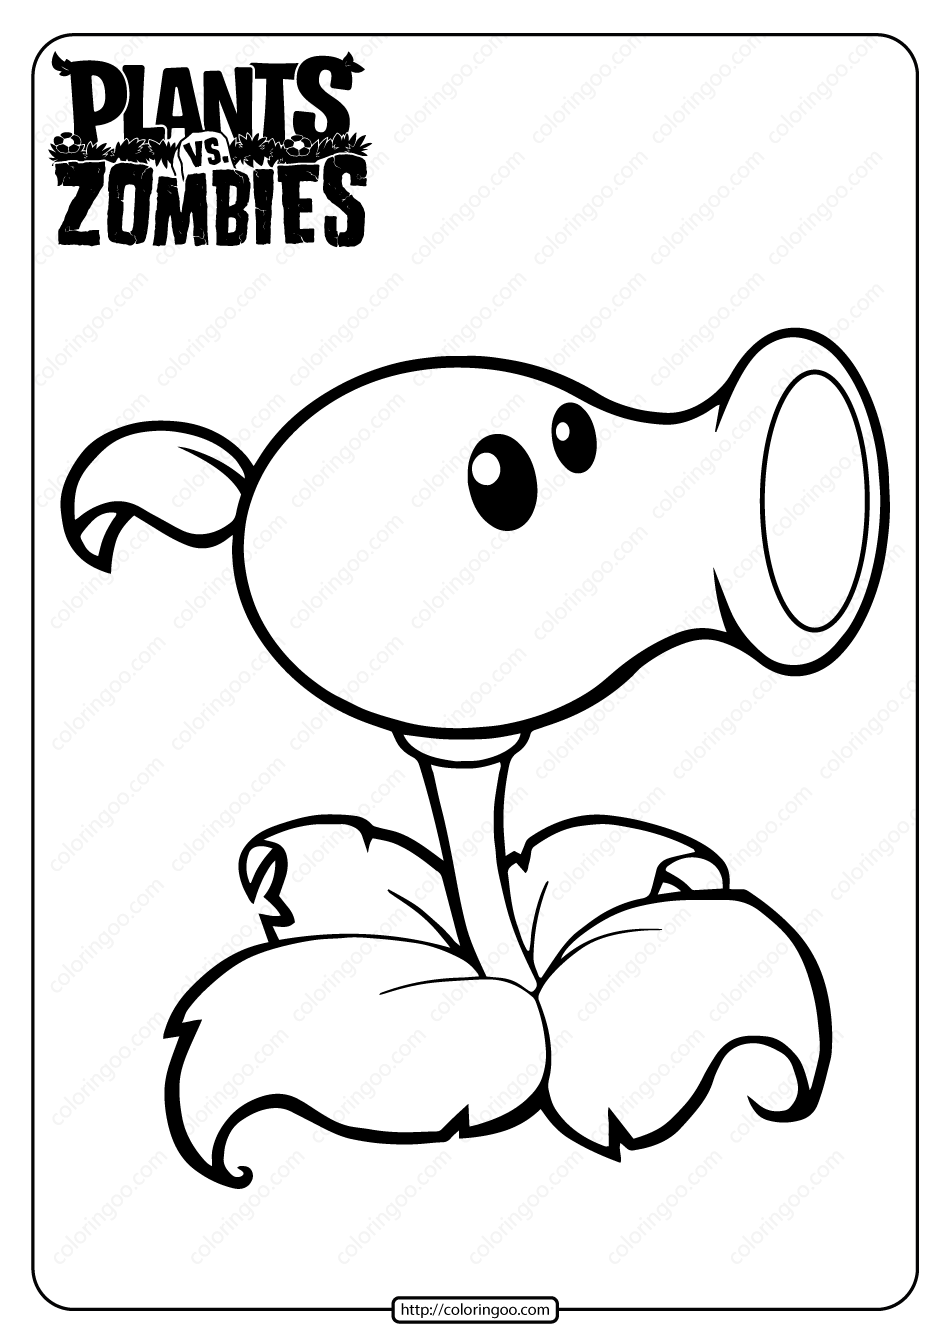 Plants Vs Zombies Peashooter Coloring Page Zombie Drawings Coloring Pages Zombie